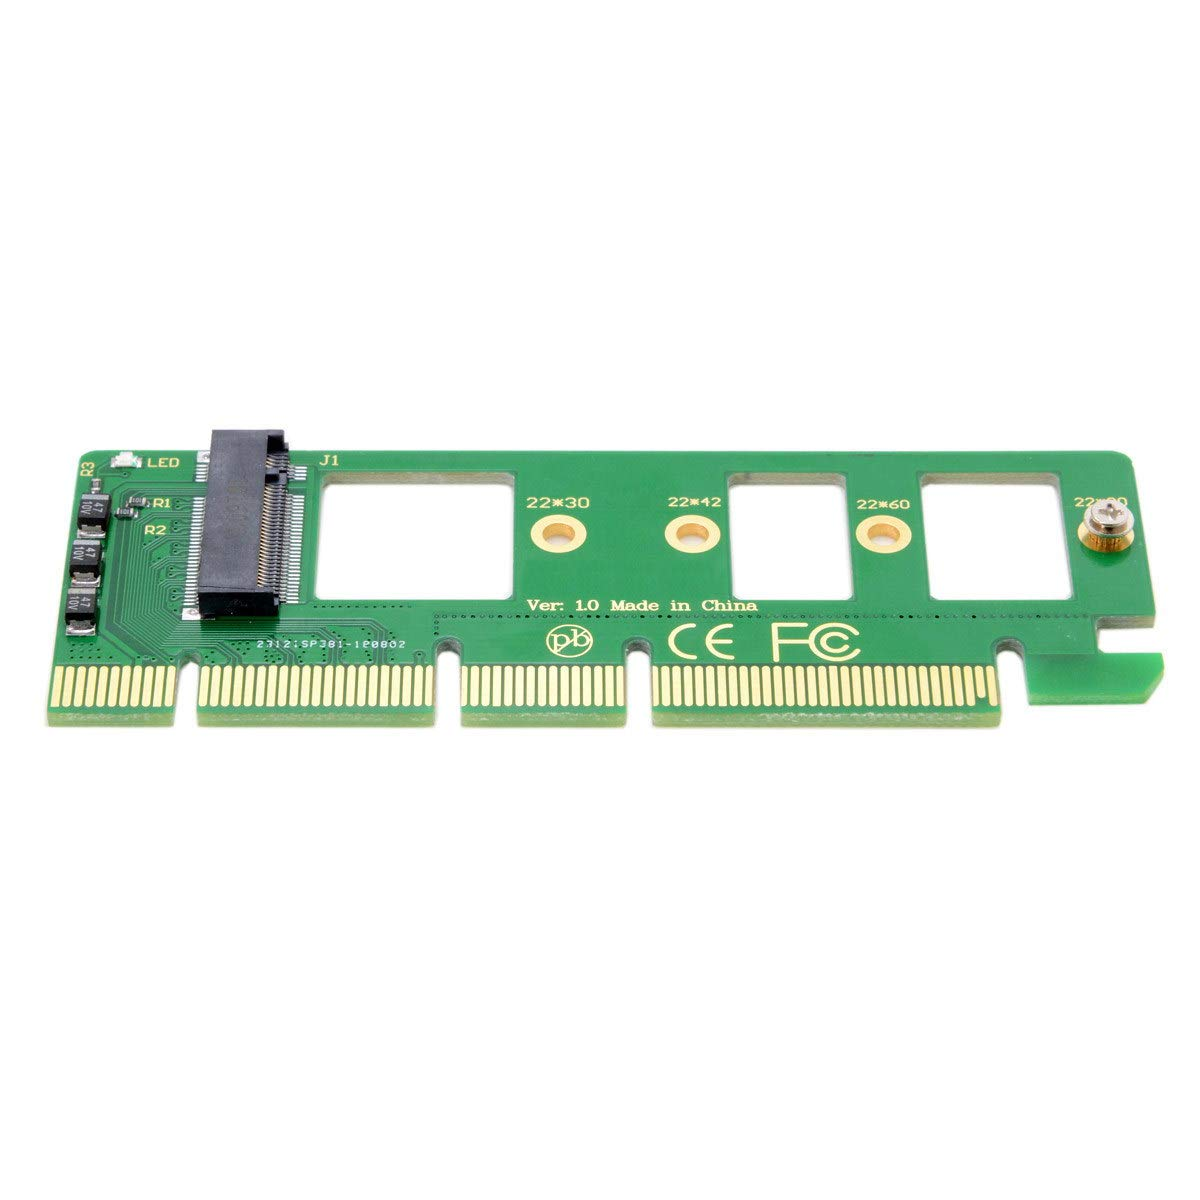 Cablecc NGFF M-Key NVME AHCI SSD to PCI-E 3.0 16x x4 Adapter for XP941 SM951 PM951 A110 m6e 960 EVO SSD by cablecc (Image #5)